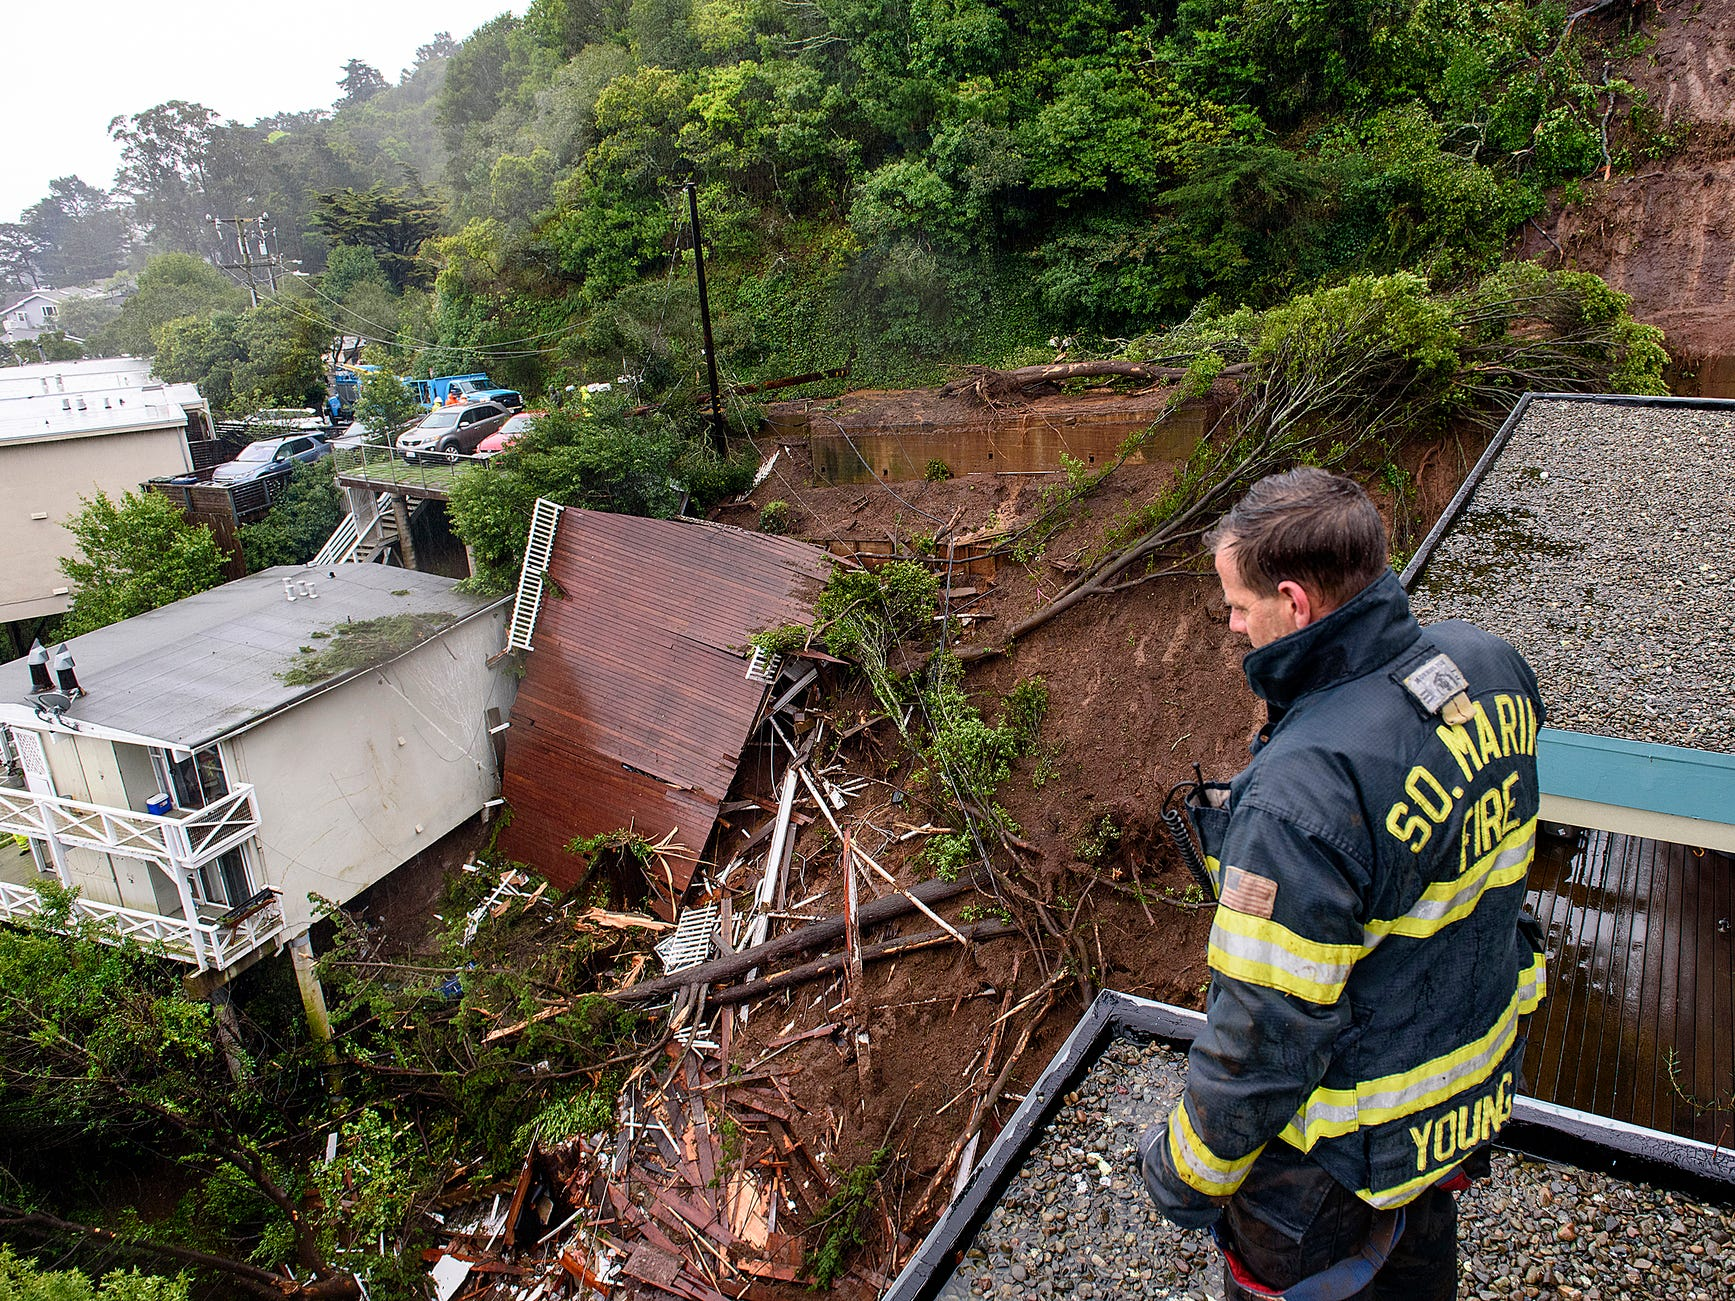 Firefighter/paramedic Patrick Young with the Southern Marin Fire Department looks out over the aftermath of a mudslide that destroyed three homes on a hillside in Sausalito, Calif., Thursday, Feb. 14, 2019. The National Weather Service says the atmospheric river sagged southward from Northern California overnight and is pointed at the southwestern corner of the state early Thursday.